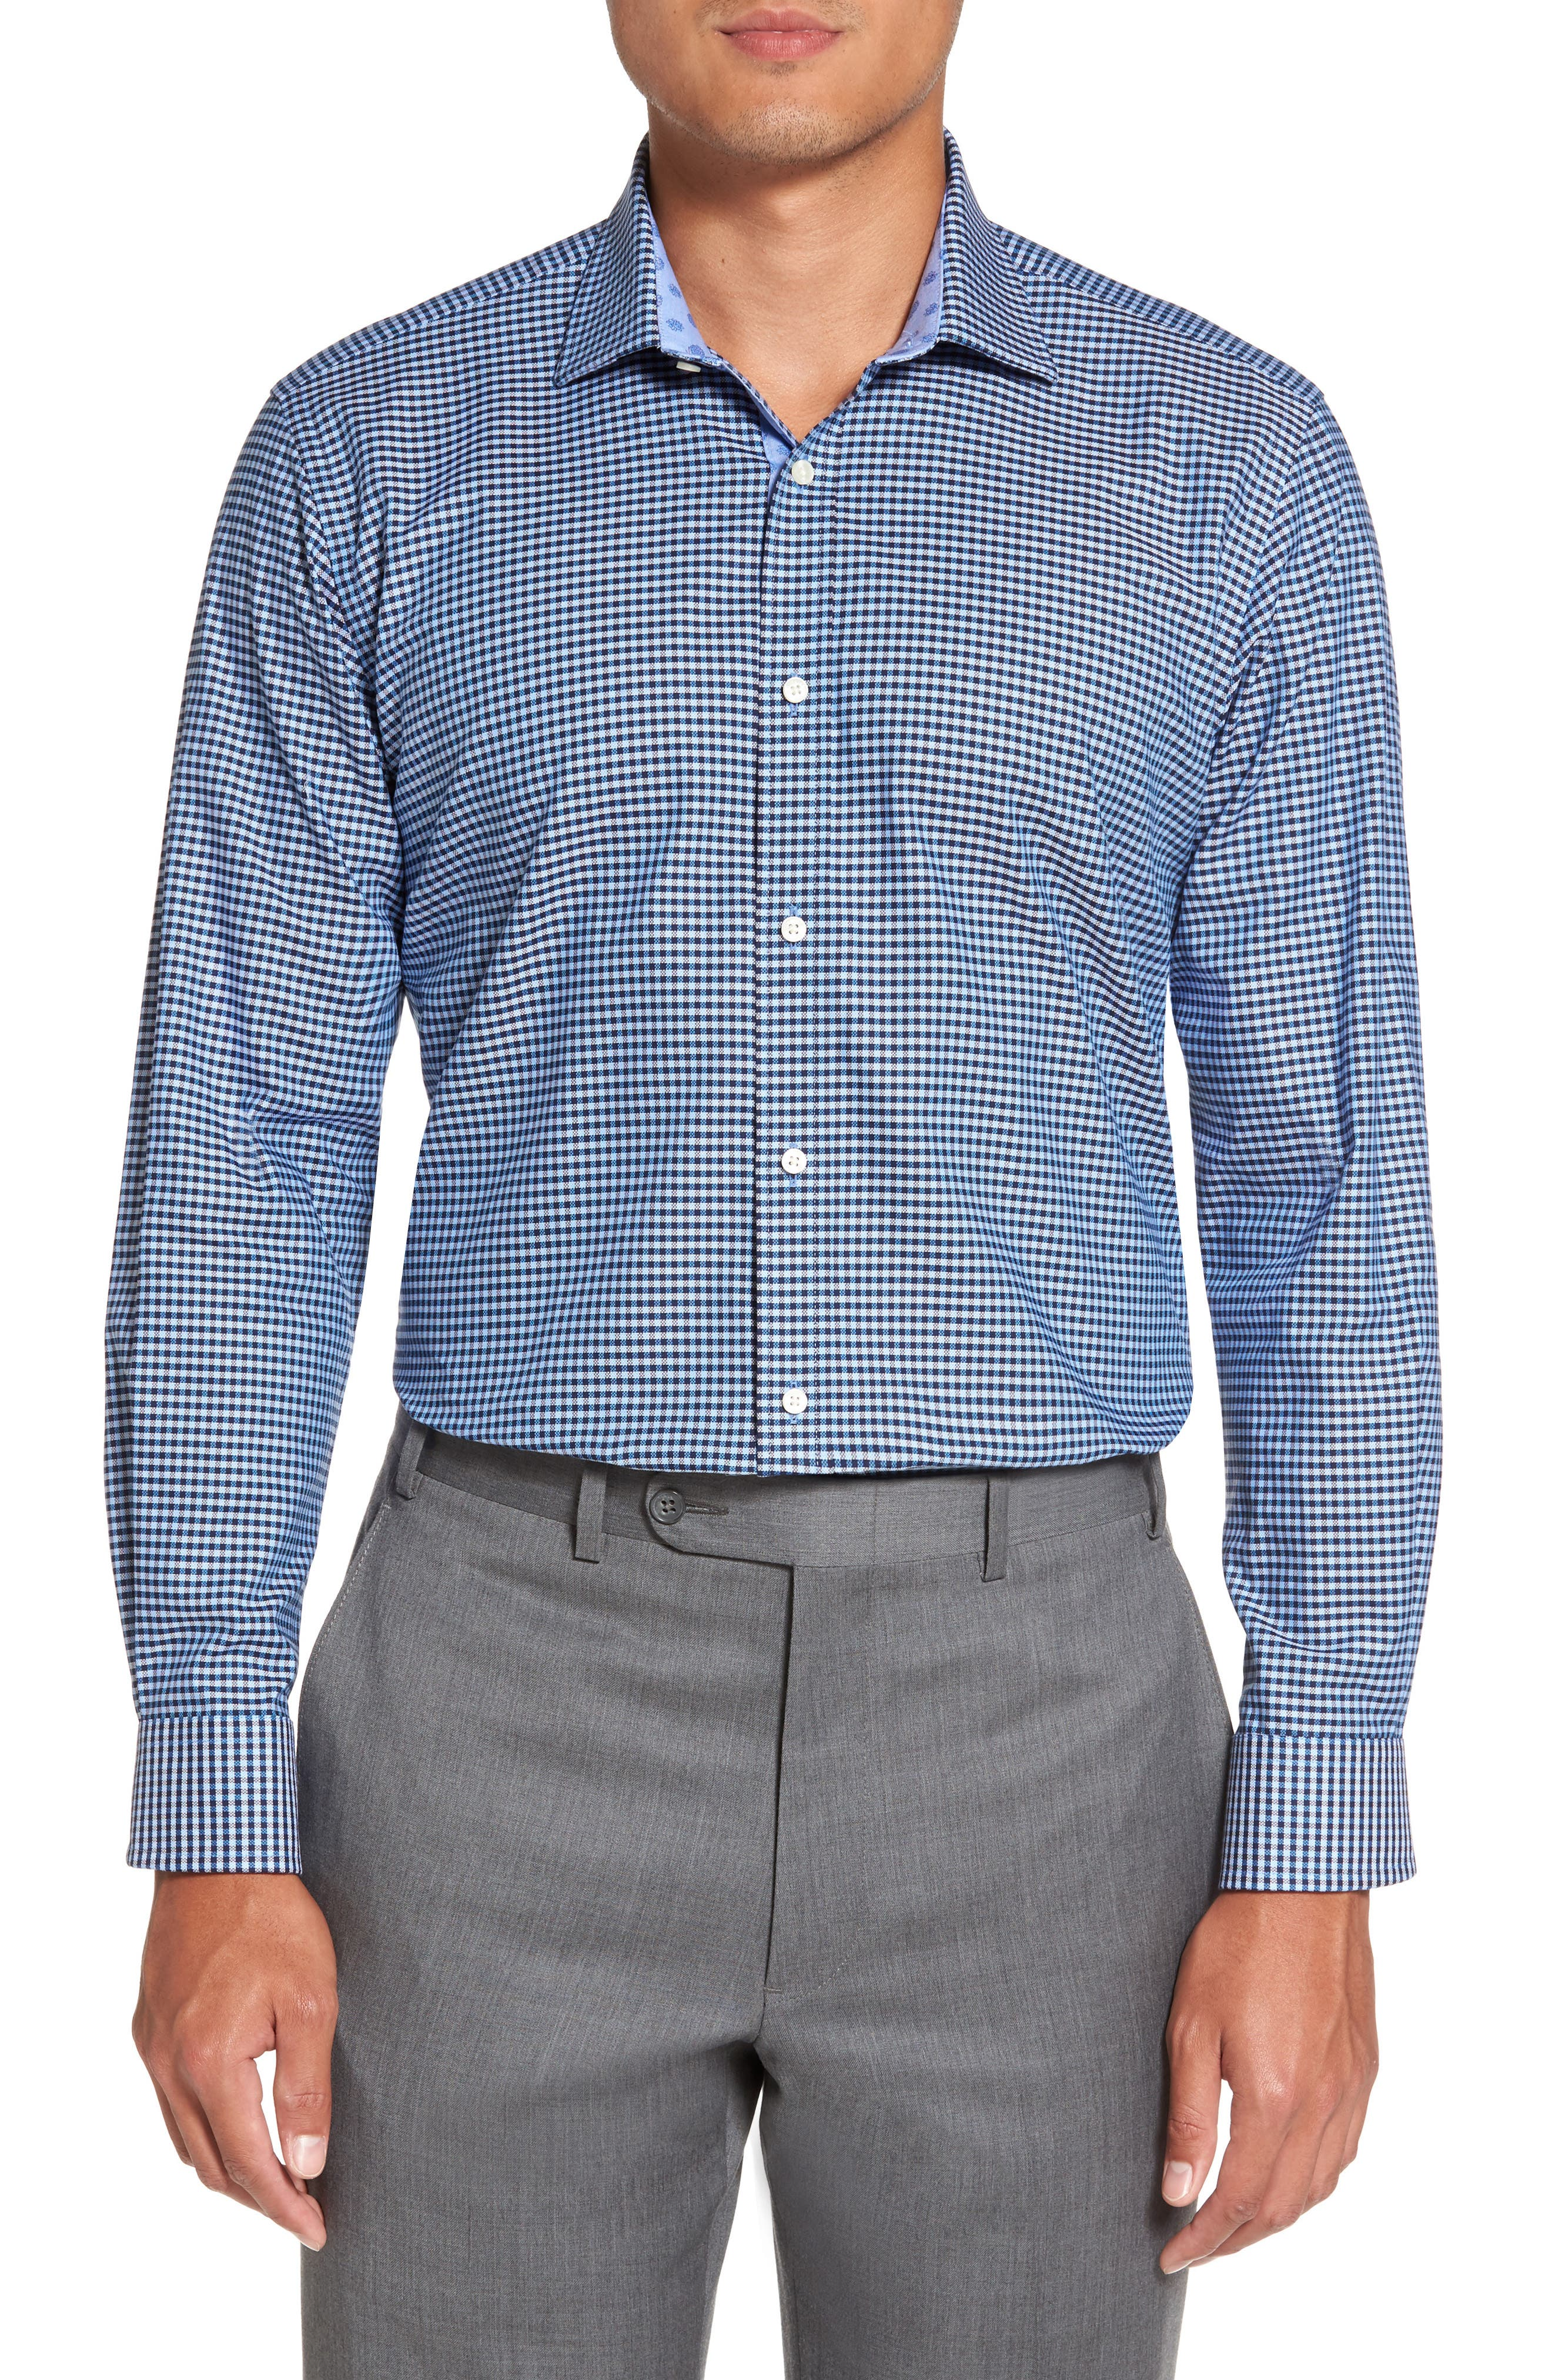 Endurance Sterling Trim Fit Dress Shirt,                             Main thumbnail 1, color,